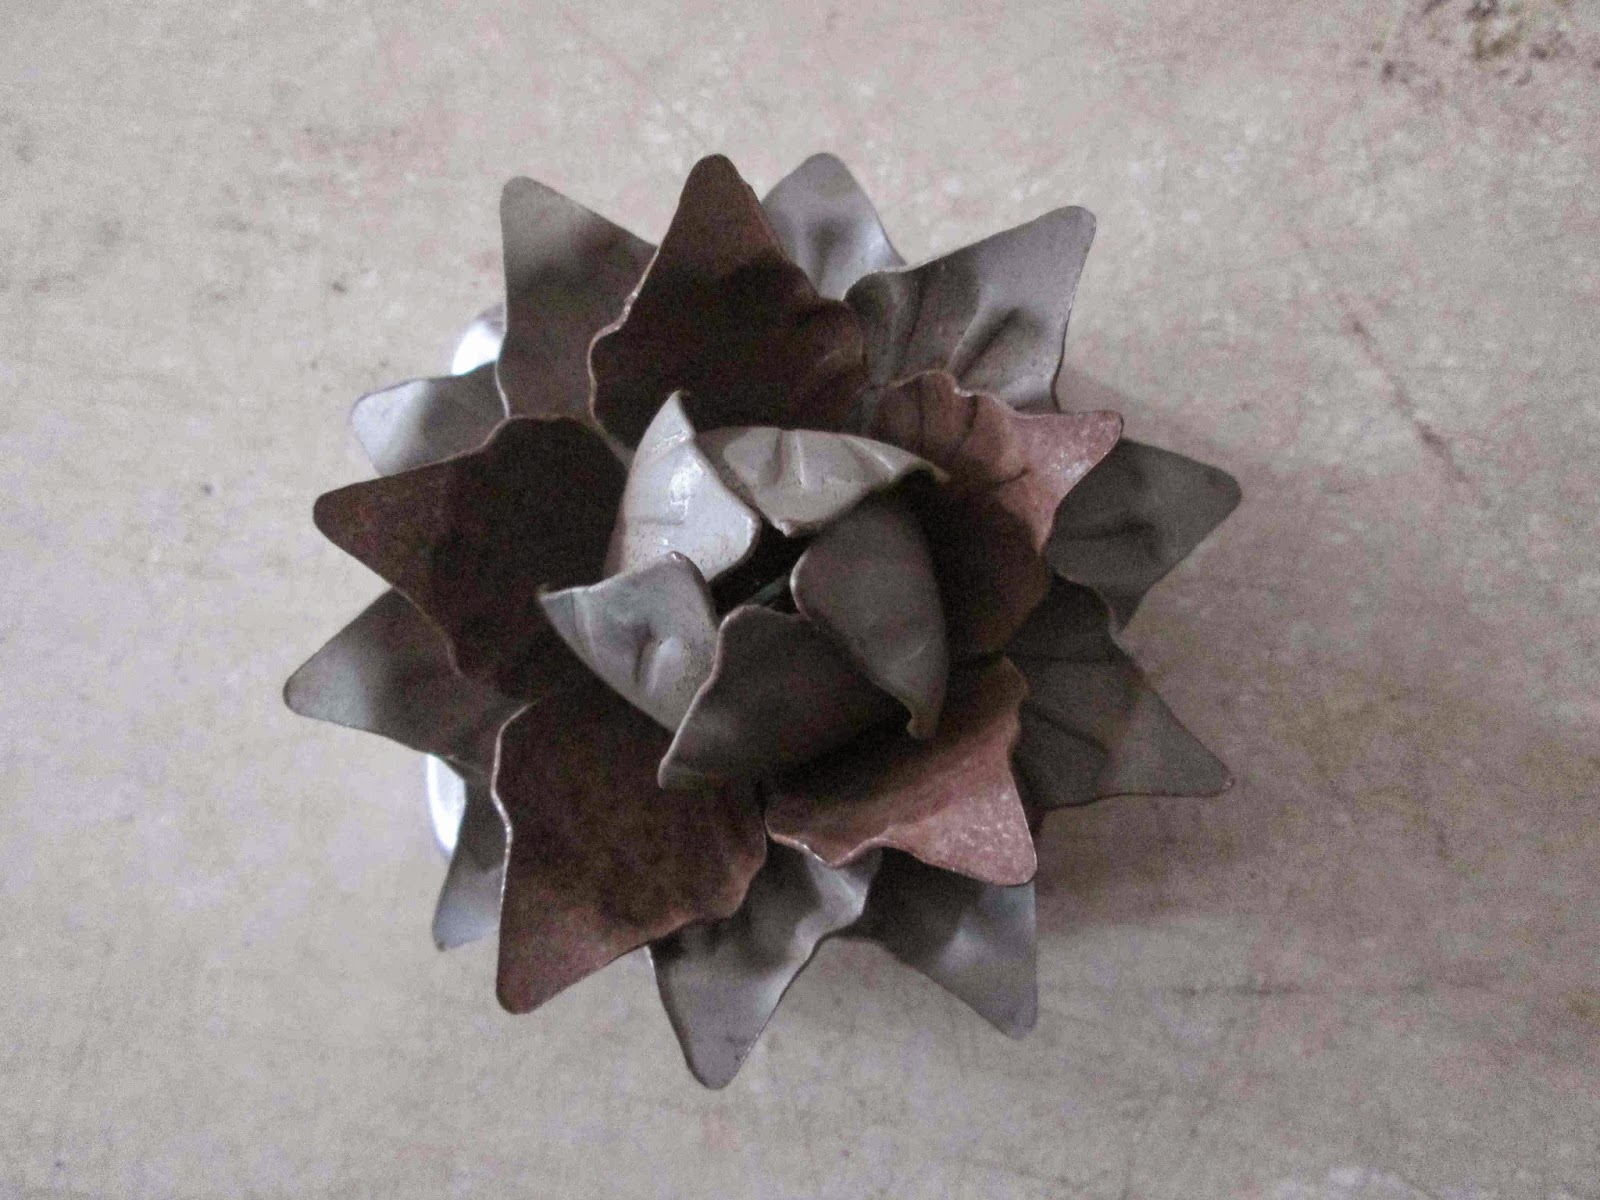 Wrought Iron Ornaments with Lotus Flower Motif Supplier of Wrought Iron Ornaments